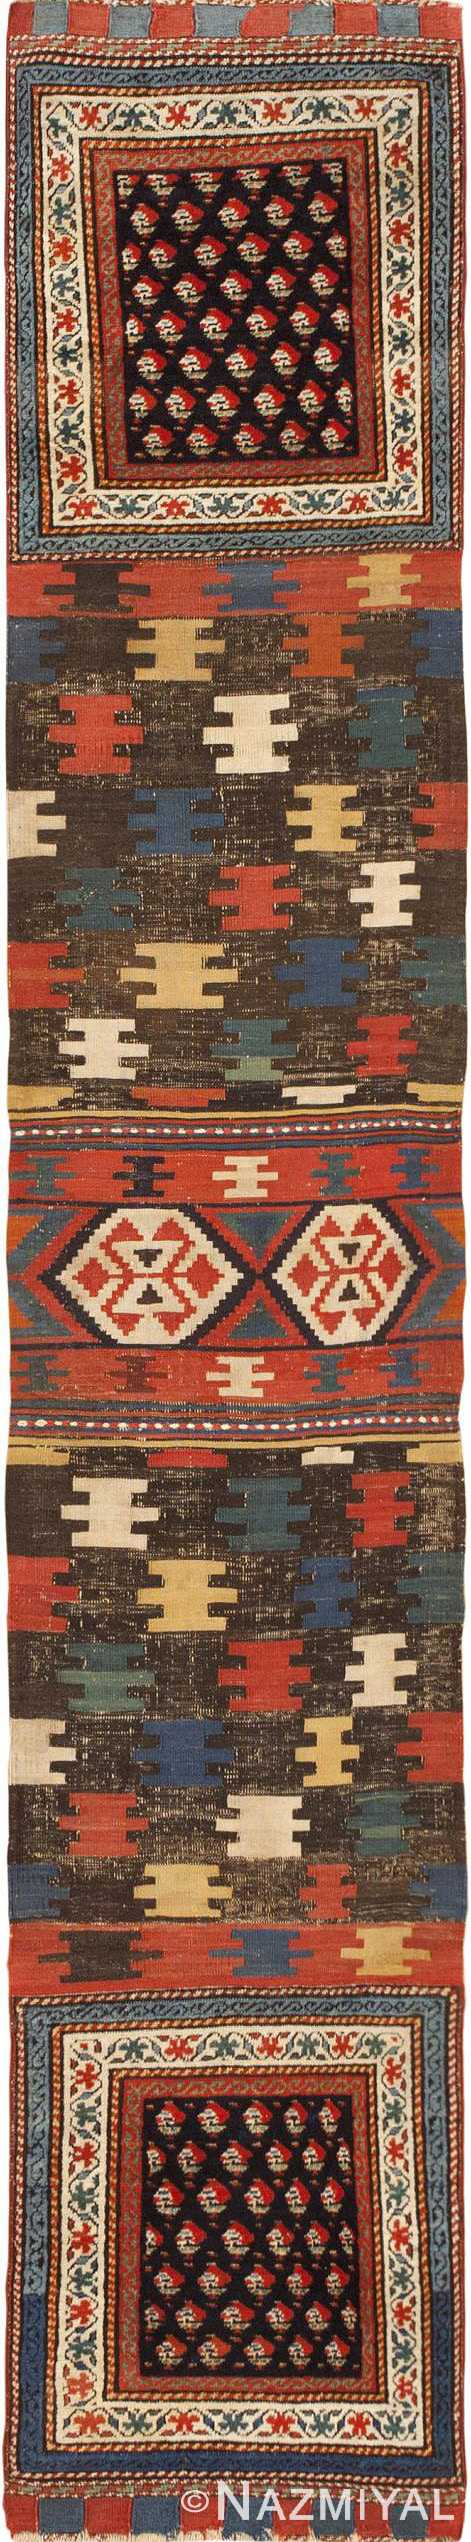 Antique Caucasian Shirvan Rug #44502 by Nazmiyal Antique Rugs